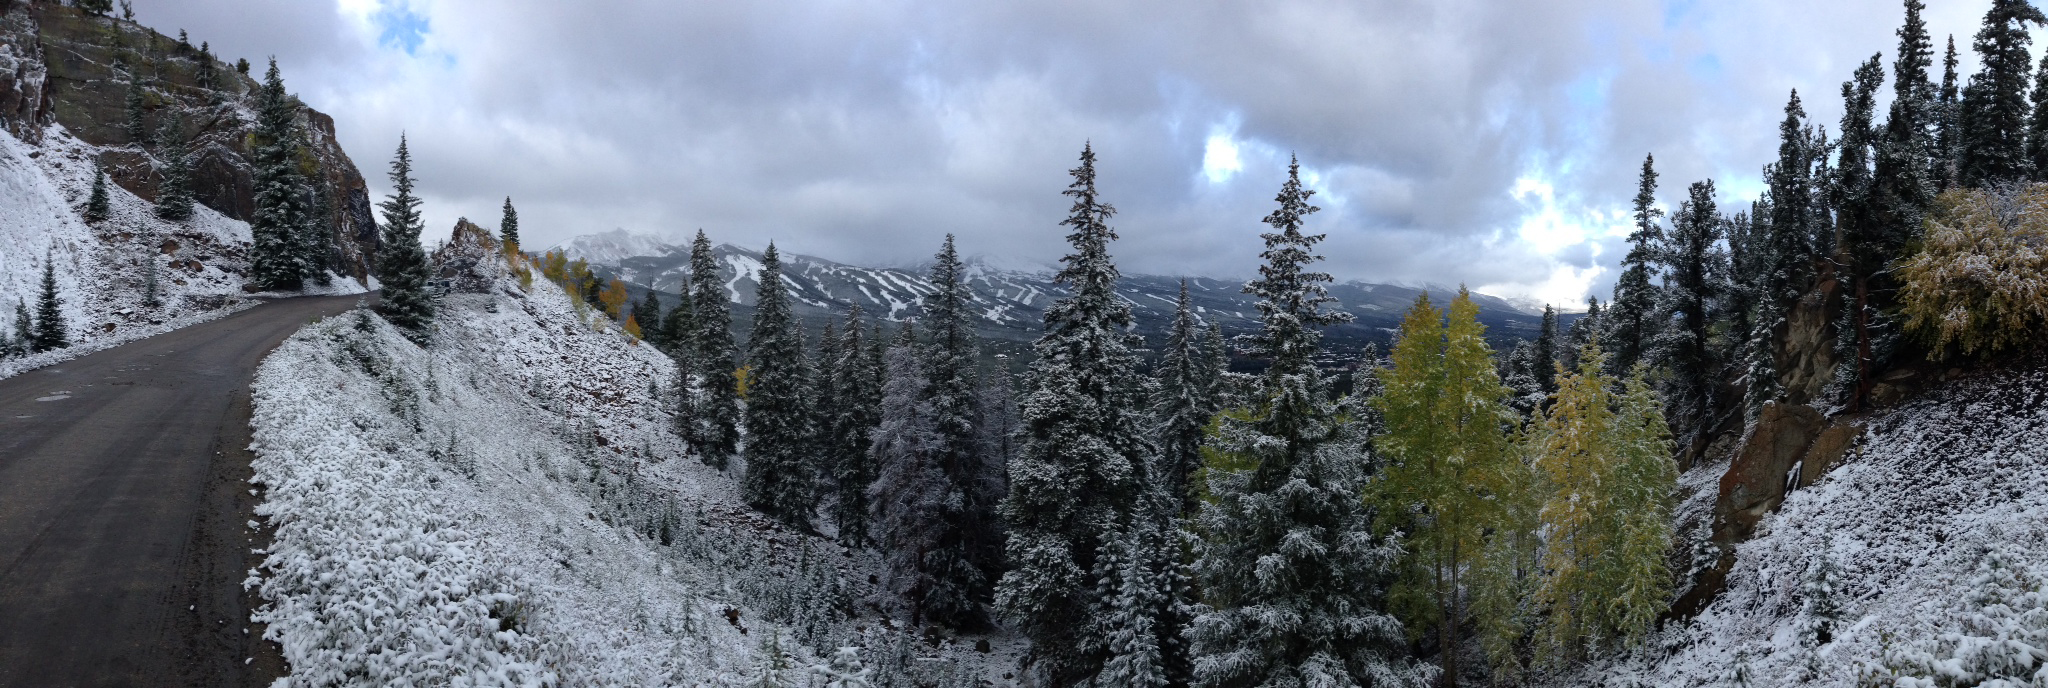 The view of the valley in Breck